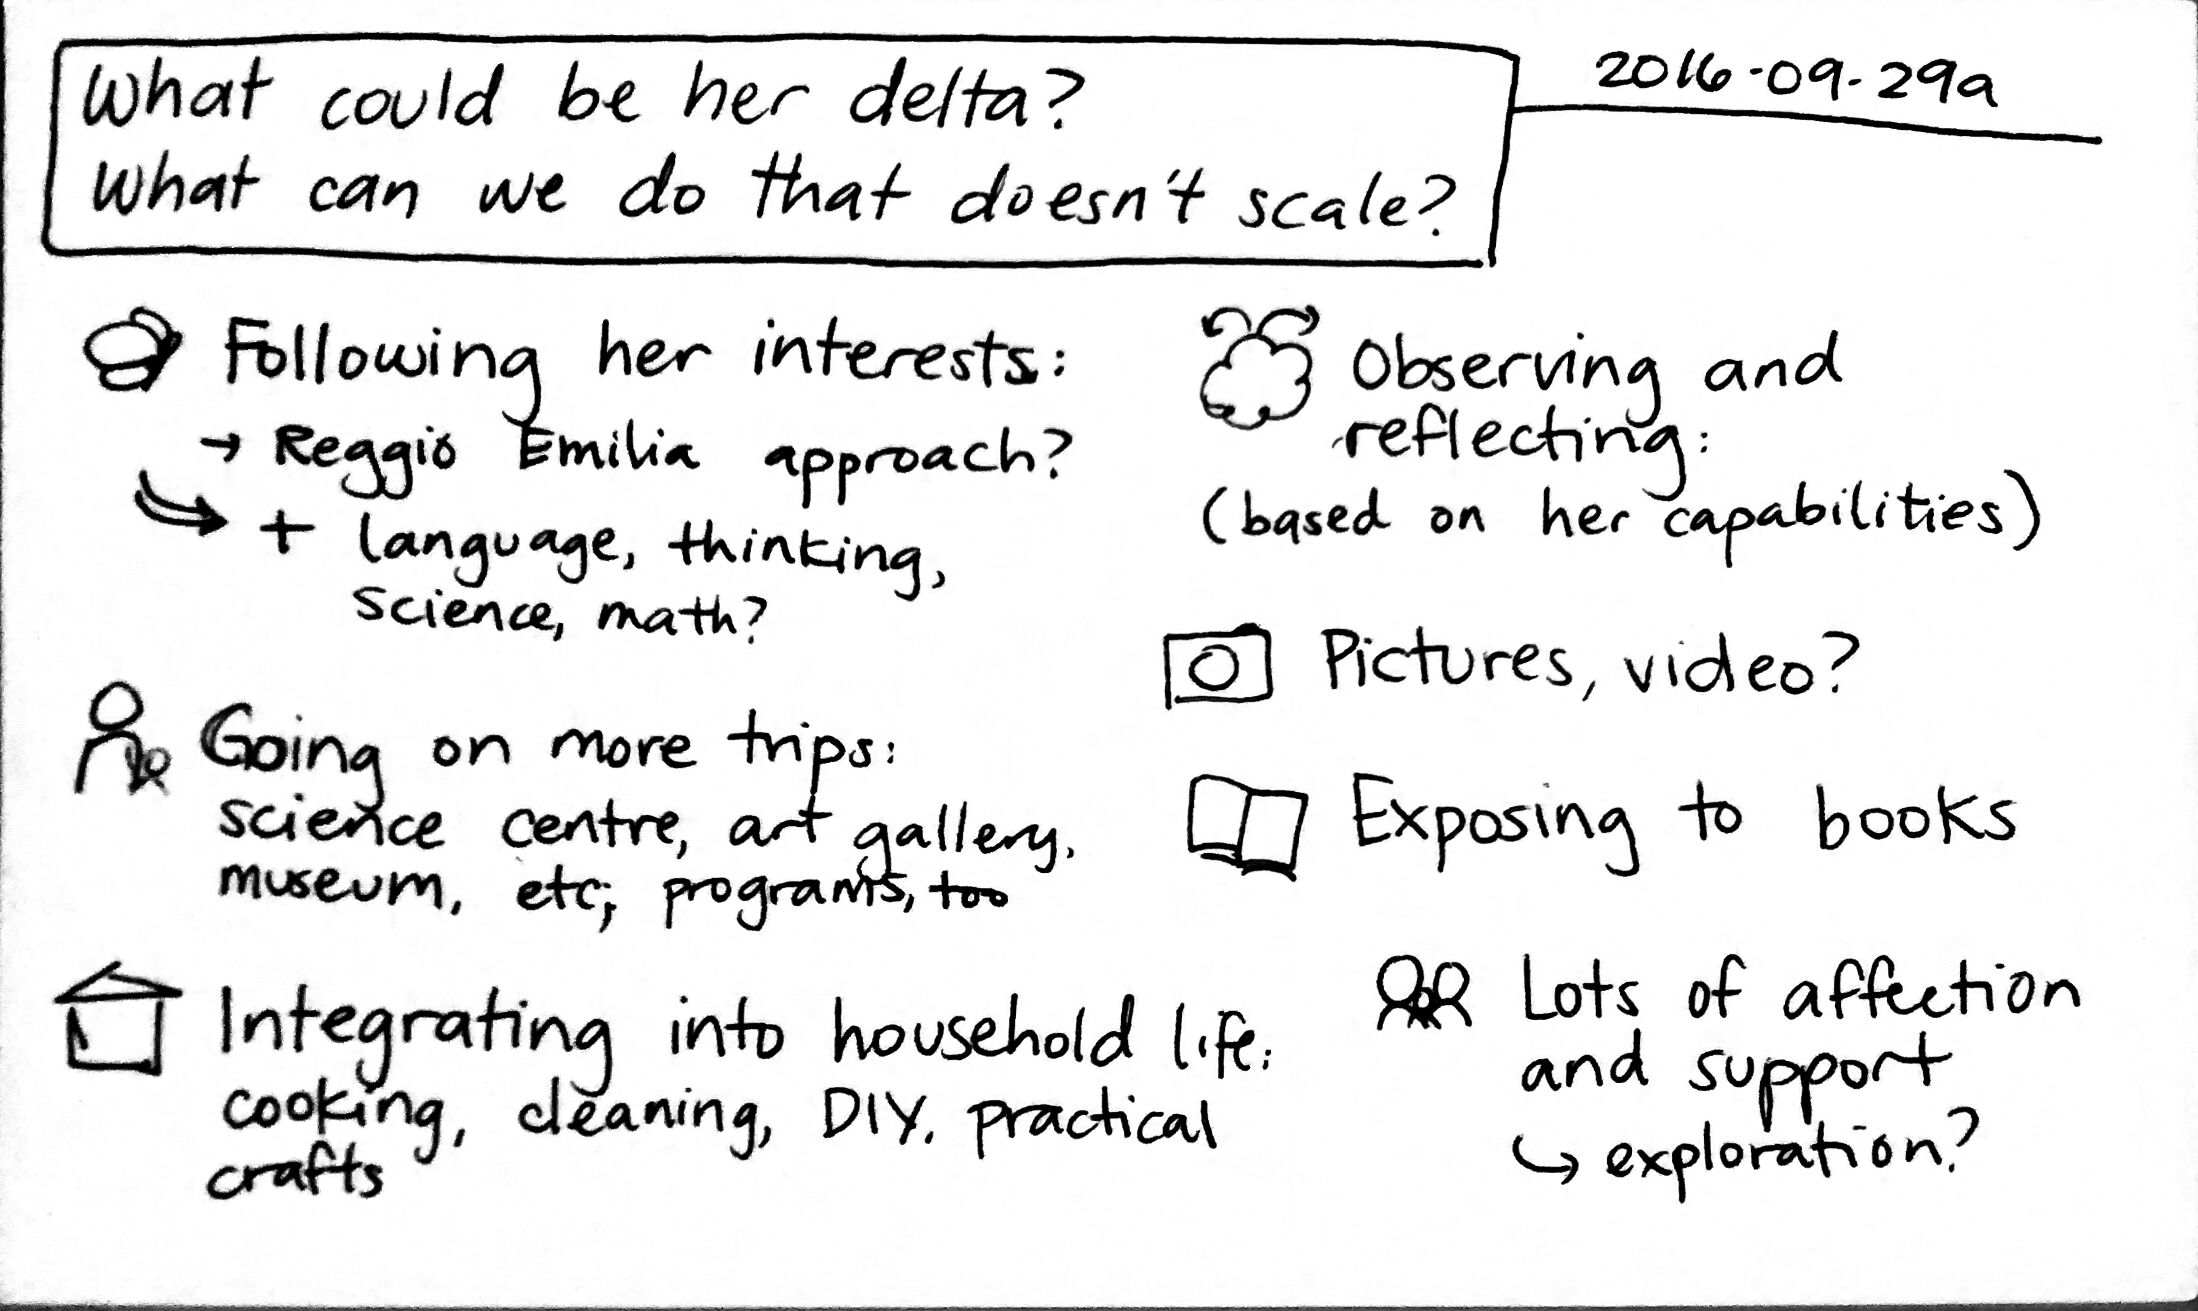 2016-09-29a What could be her delta - What can we do that doesn't scale #parenting #delta #childcare.jpg